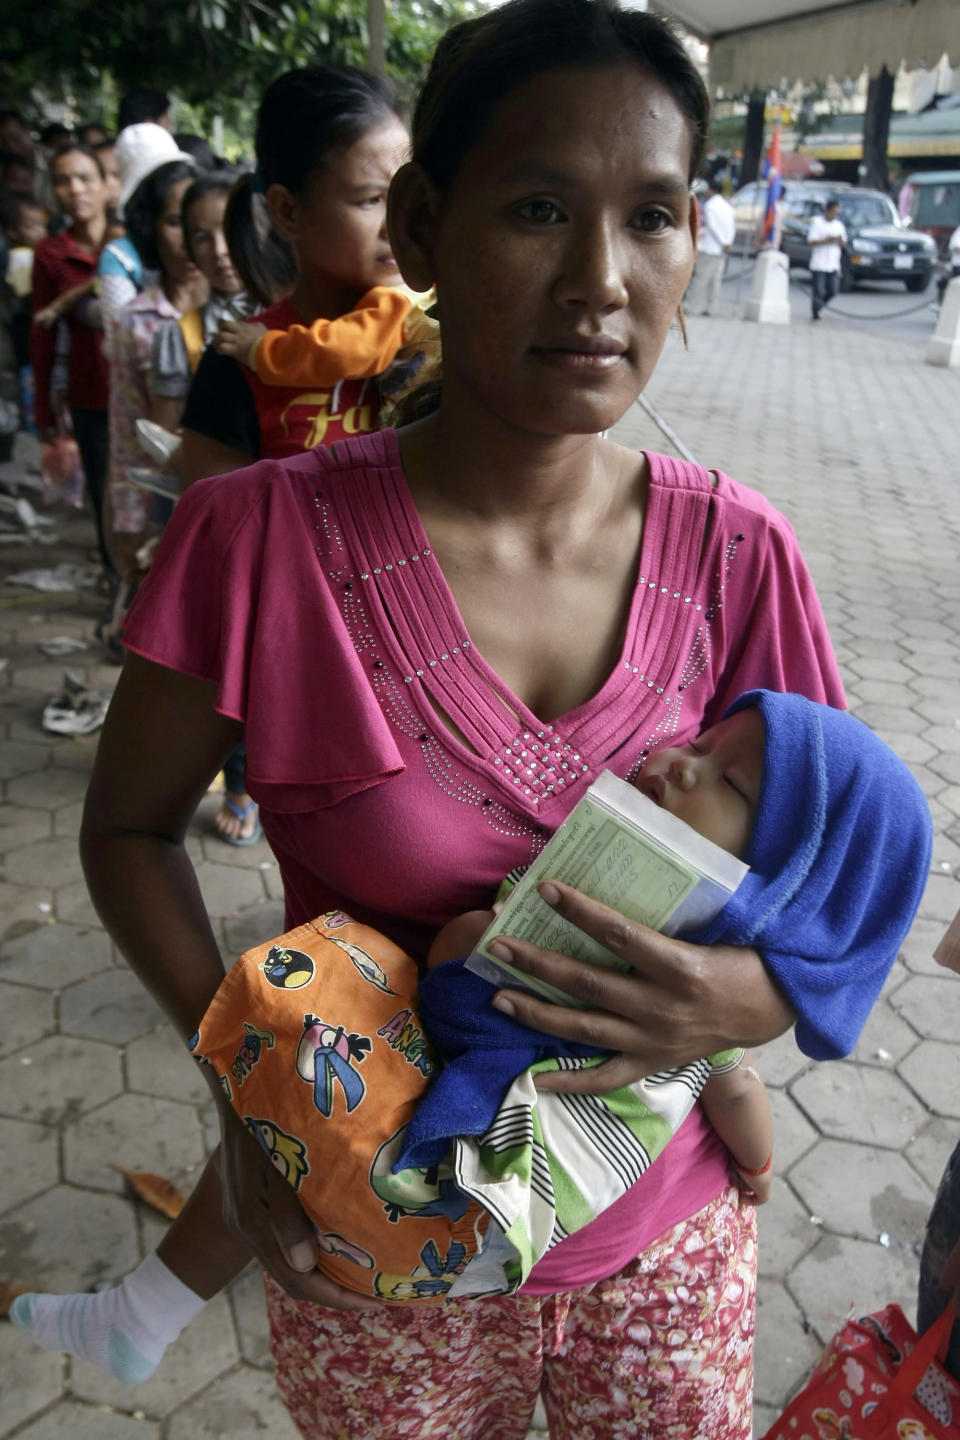 A Cambodian lines up to wait for a medical check-up for her baby outside Kuntha Bopha children's hospital in Phnom Penh, Cambodia, Wednesday, July 11, 2012. The enterovirus 71 strain, or EV-71, raised fears earlier this week after it was detected in some lab samples taken after 52 of 59 Cambodian children died suddenly from a mystery illness that sparked international alarm. Health officials are still investigating, but say the virus is likely to blame. (AP Photo/Heng Sinith)